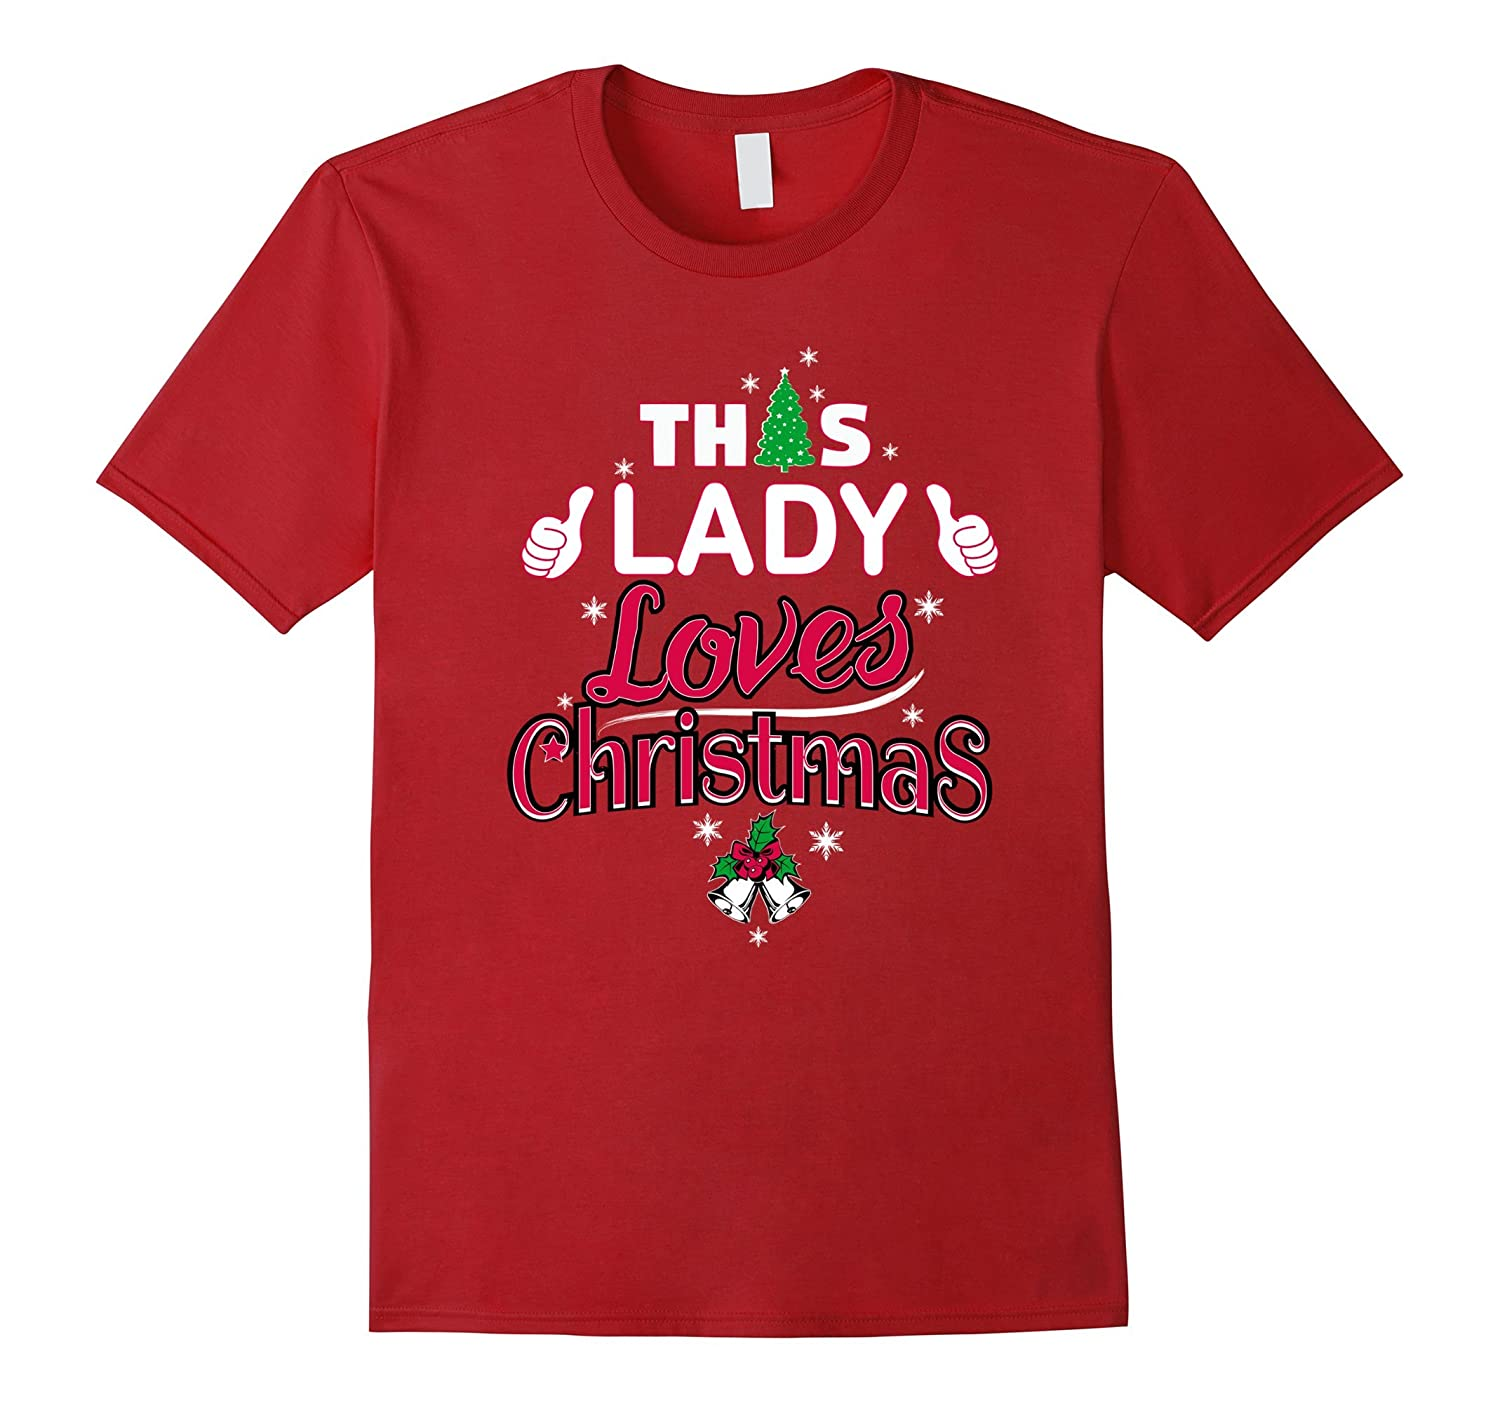 This Lady Loves Christmas Funny Humor T-Shirt For Girls